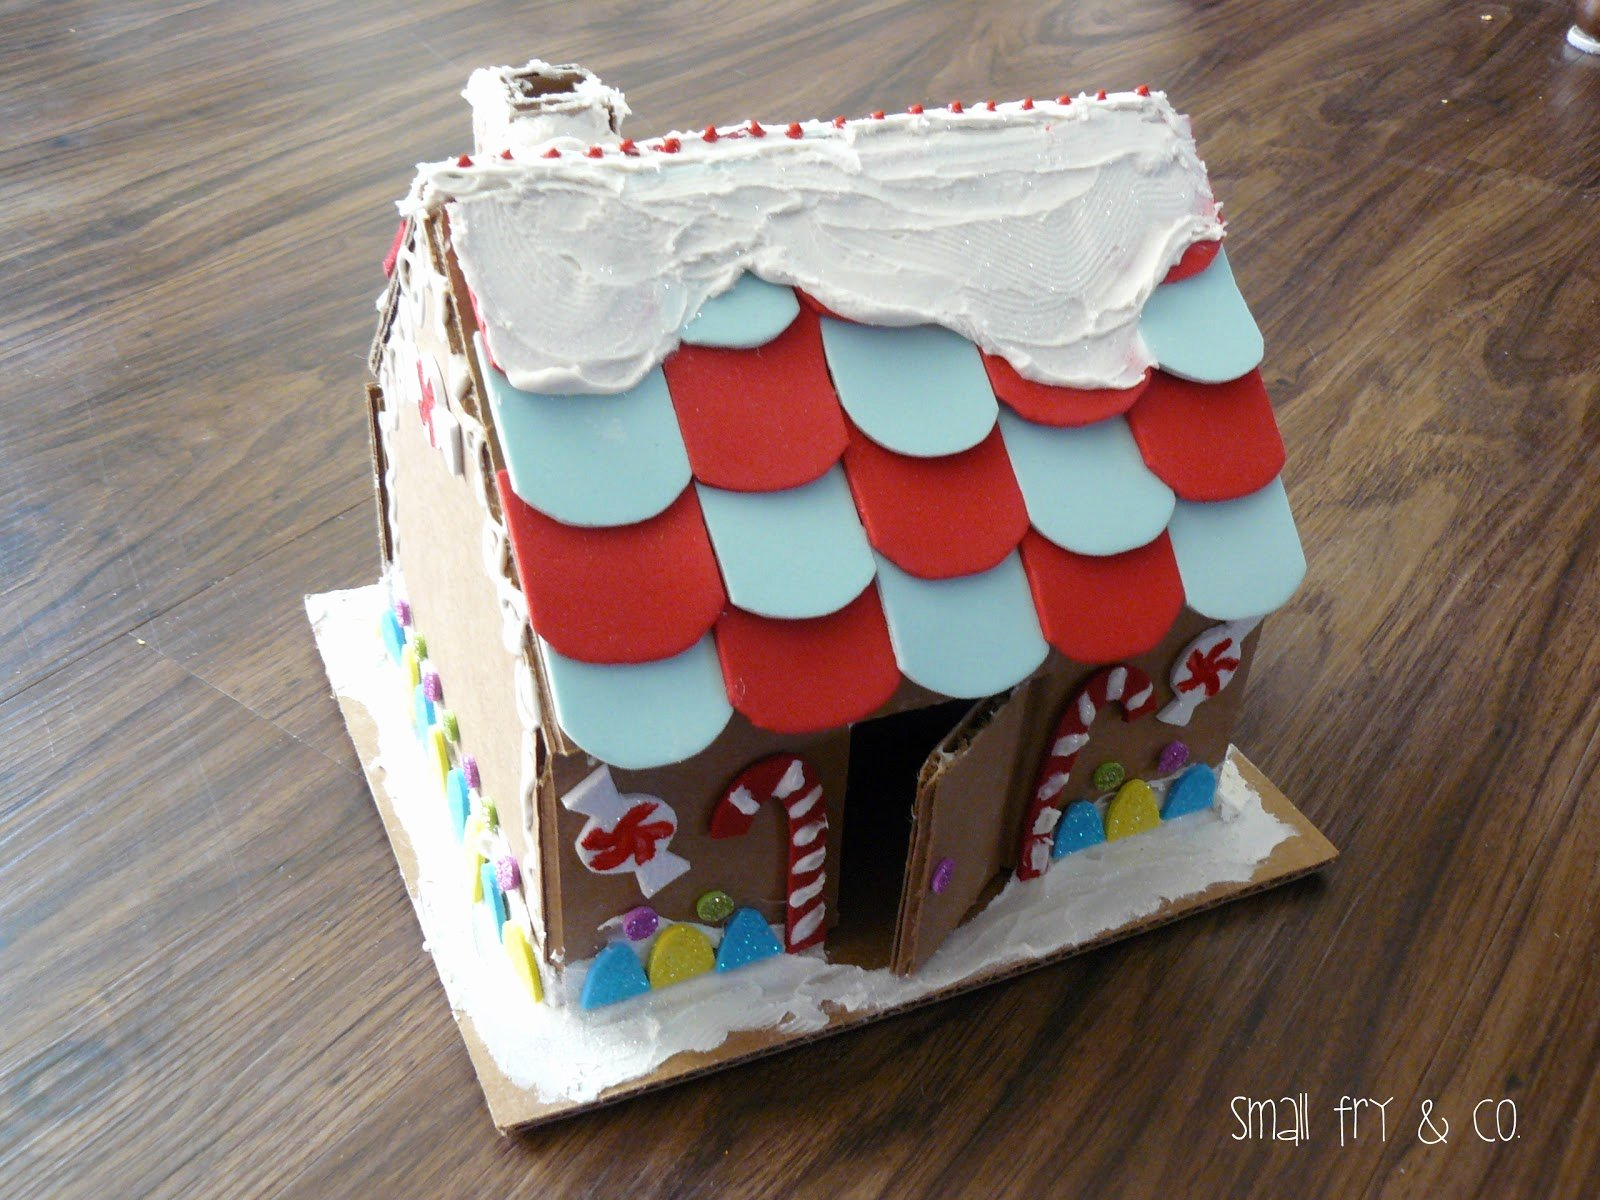 Cardboard Gingerbread House Elegant Small Fry & Co A Gingerbread House that Could Last the